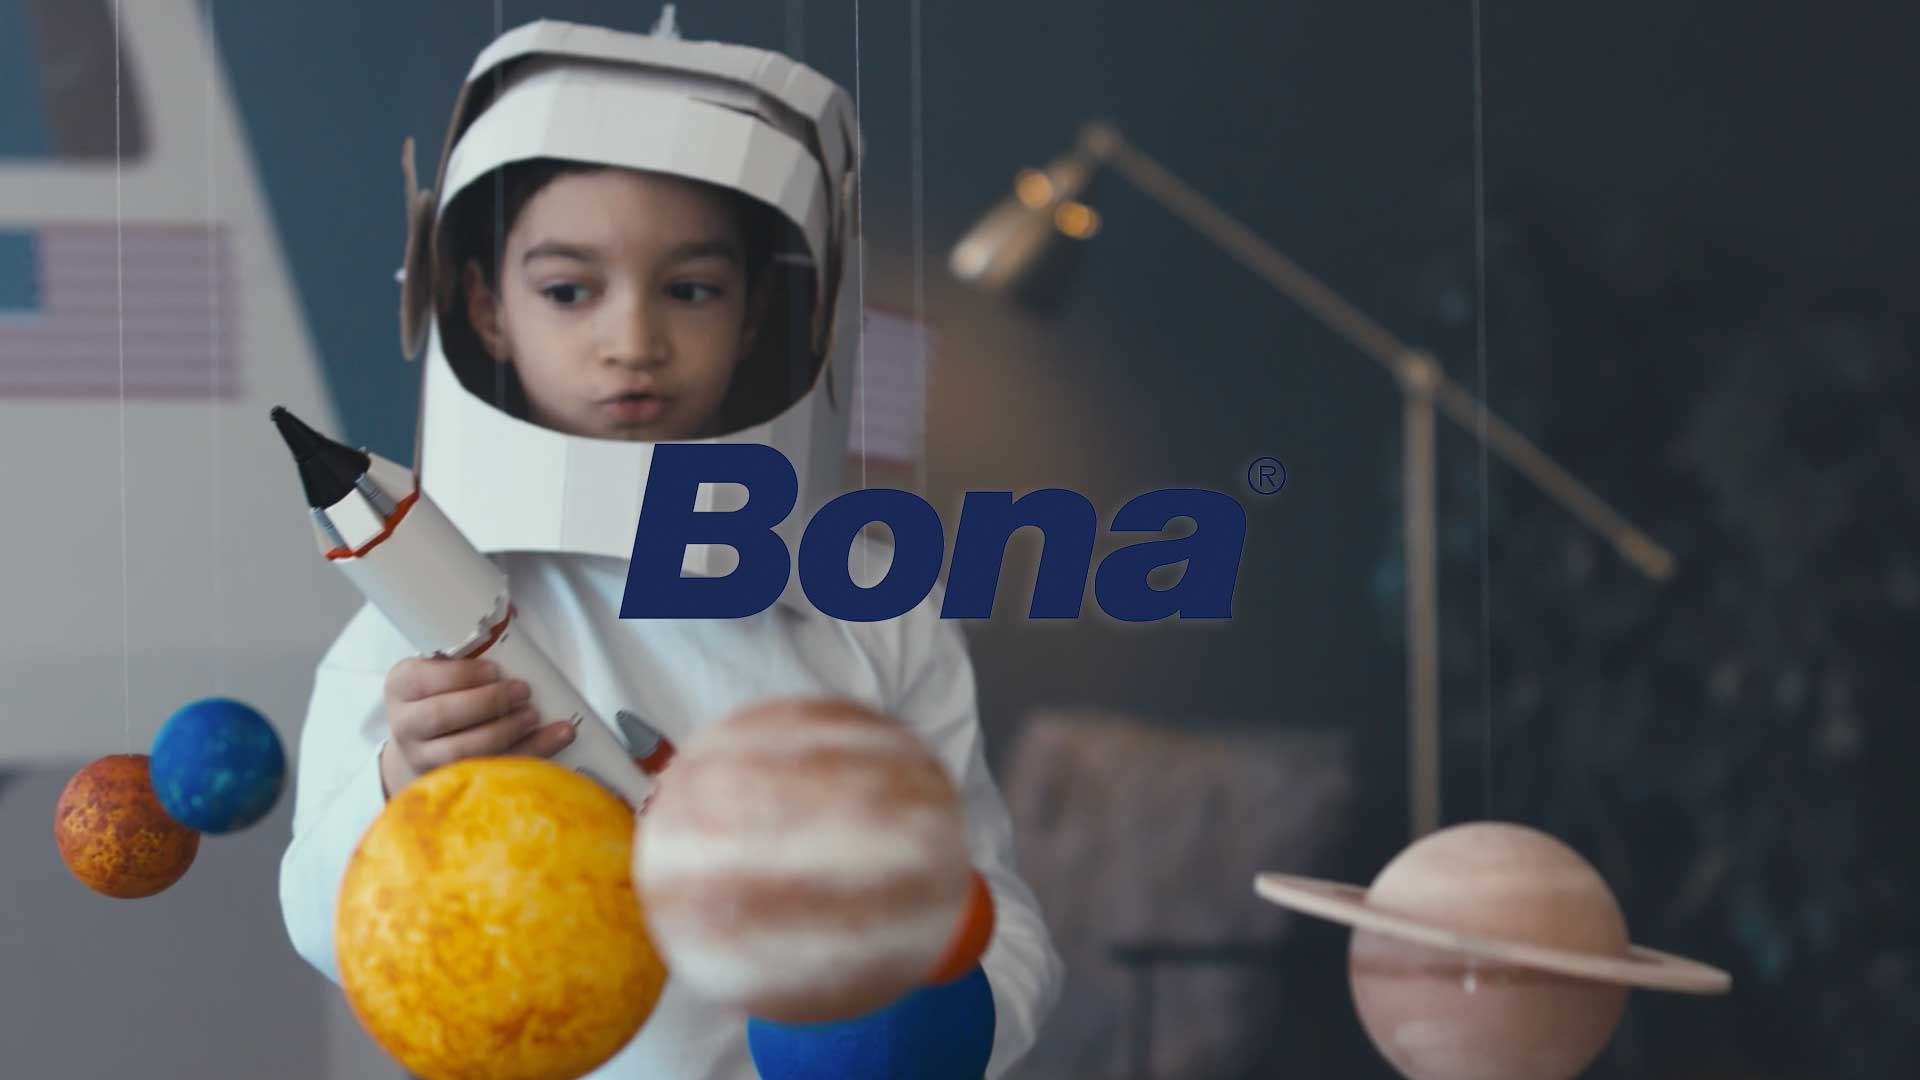 Bona Thumbnail for Denver Video Production Company named Venture